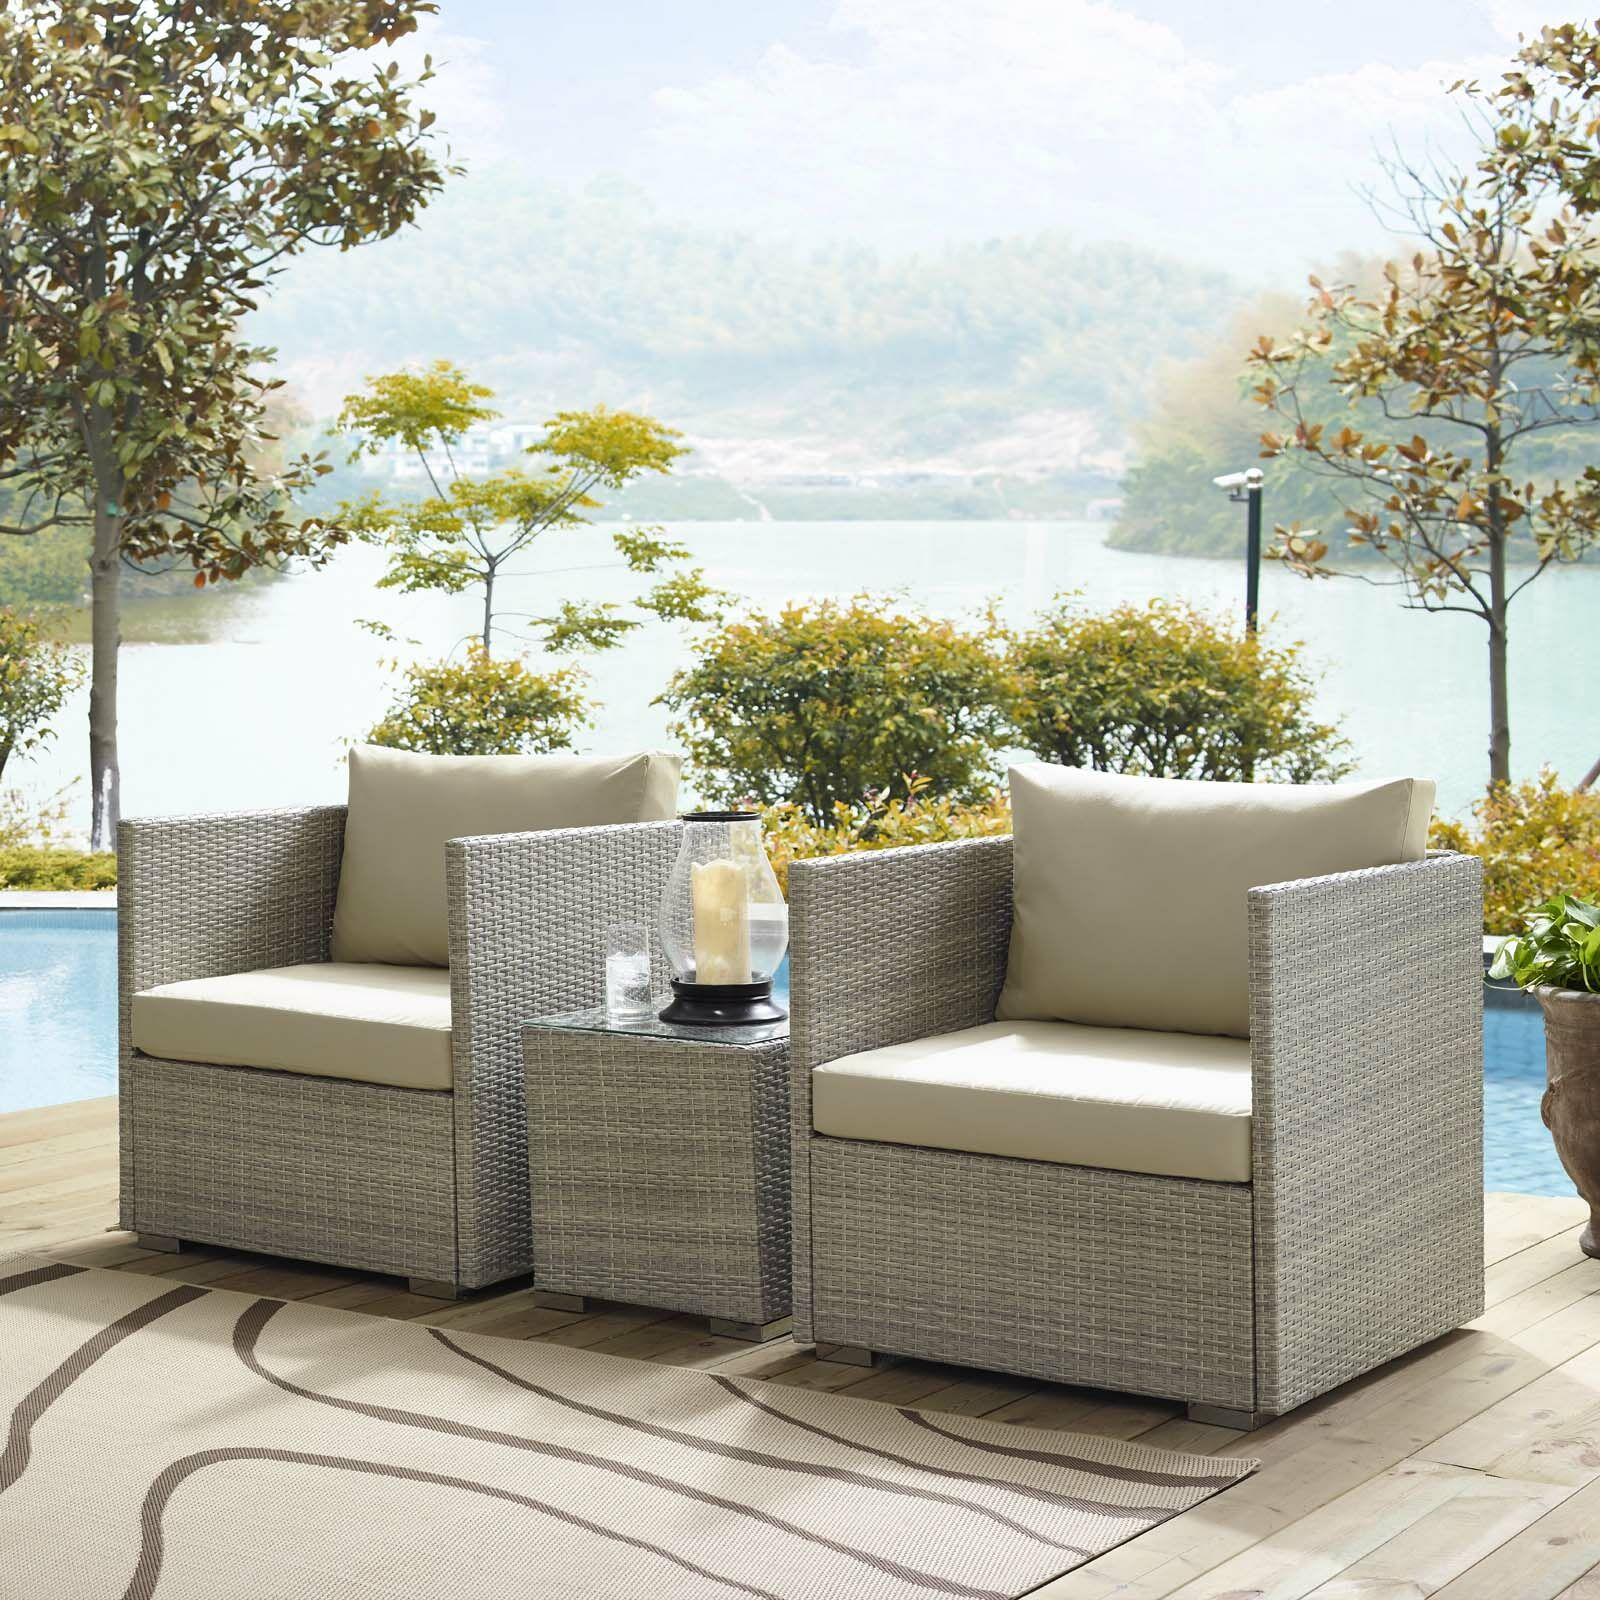 Heinrich 3 Piece Sunbrella� Conversation Set with Cushions Cushion Color: Beige